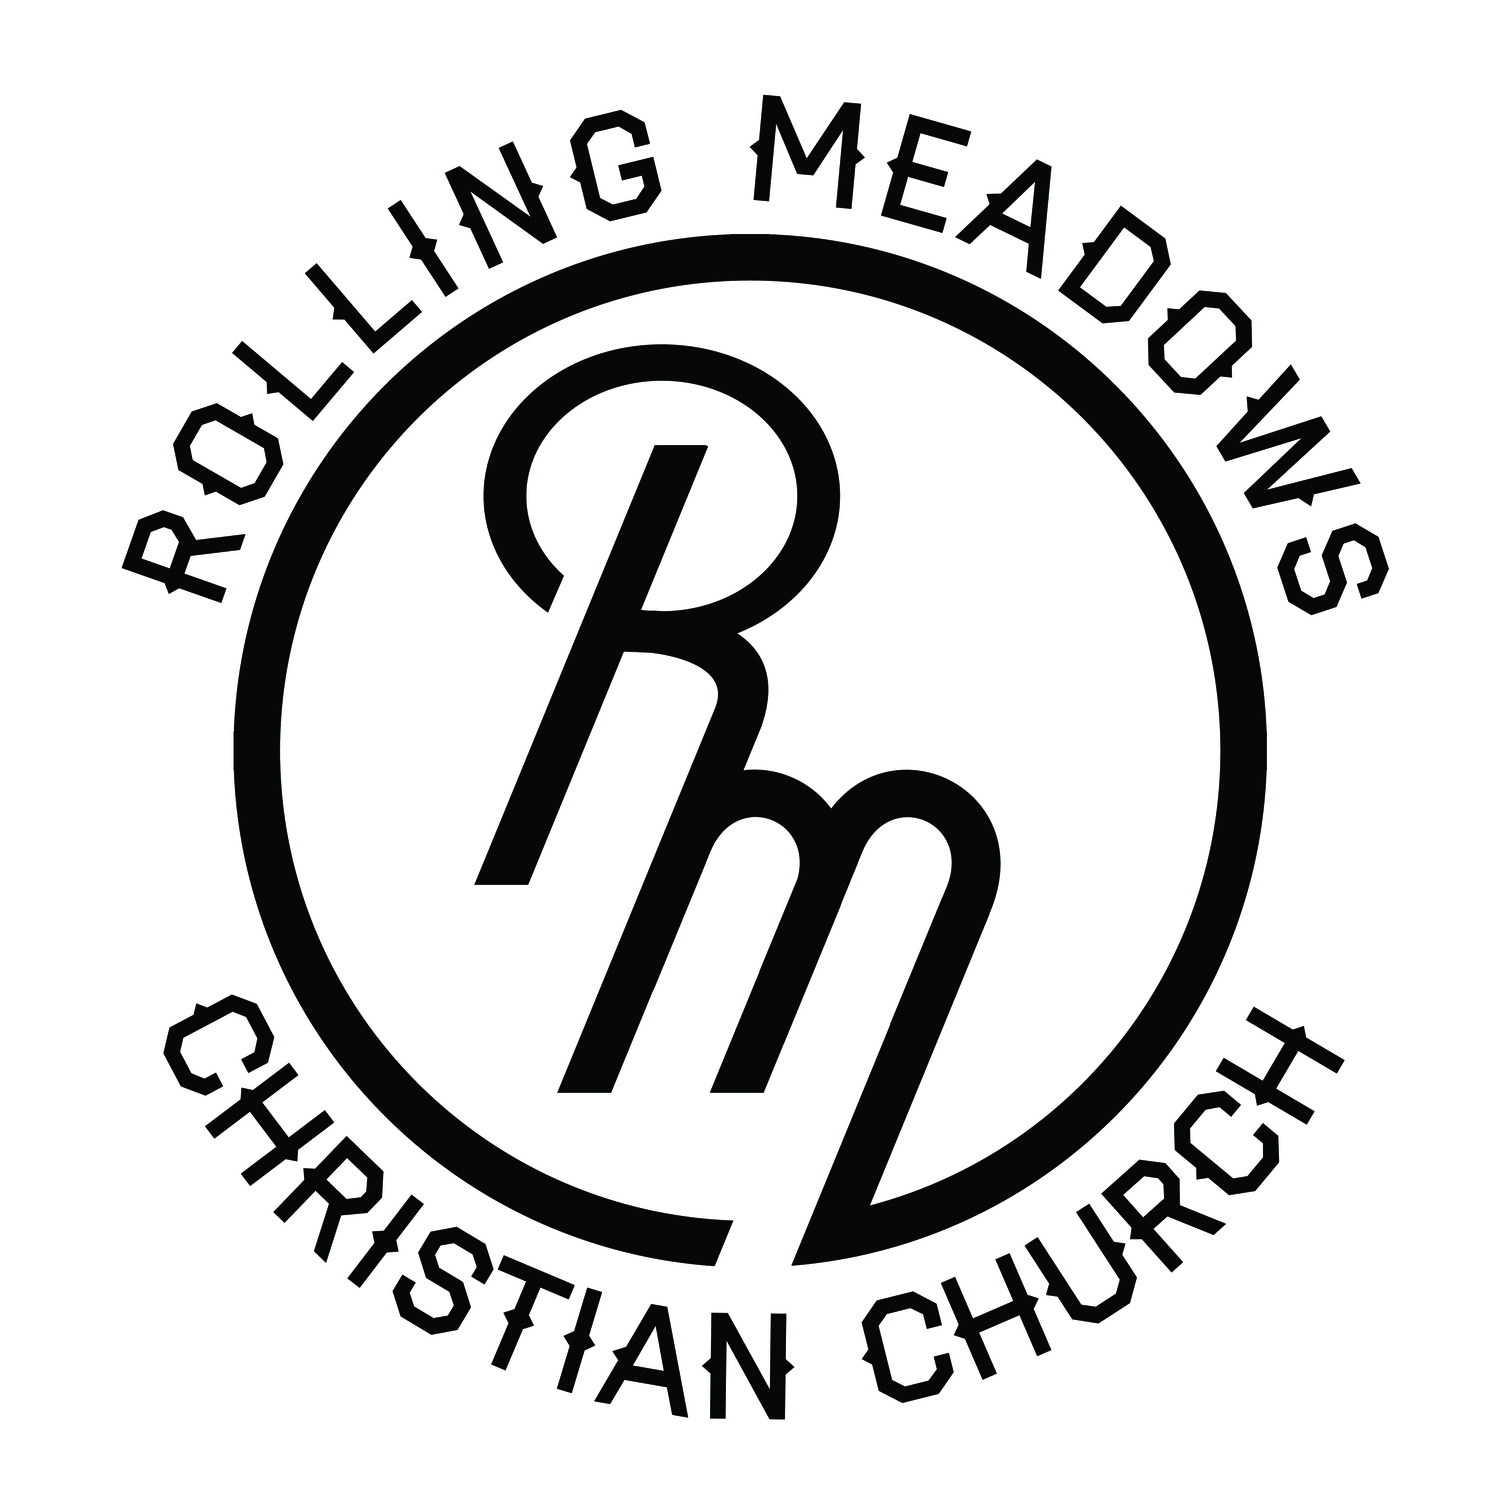 rolling meadows christian personals Zillow has 173 homes for sale in rolling meadows il view listing photos, review sales history, and use our detailed real estate filters to find the perfect place.